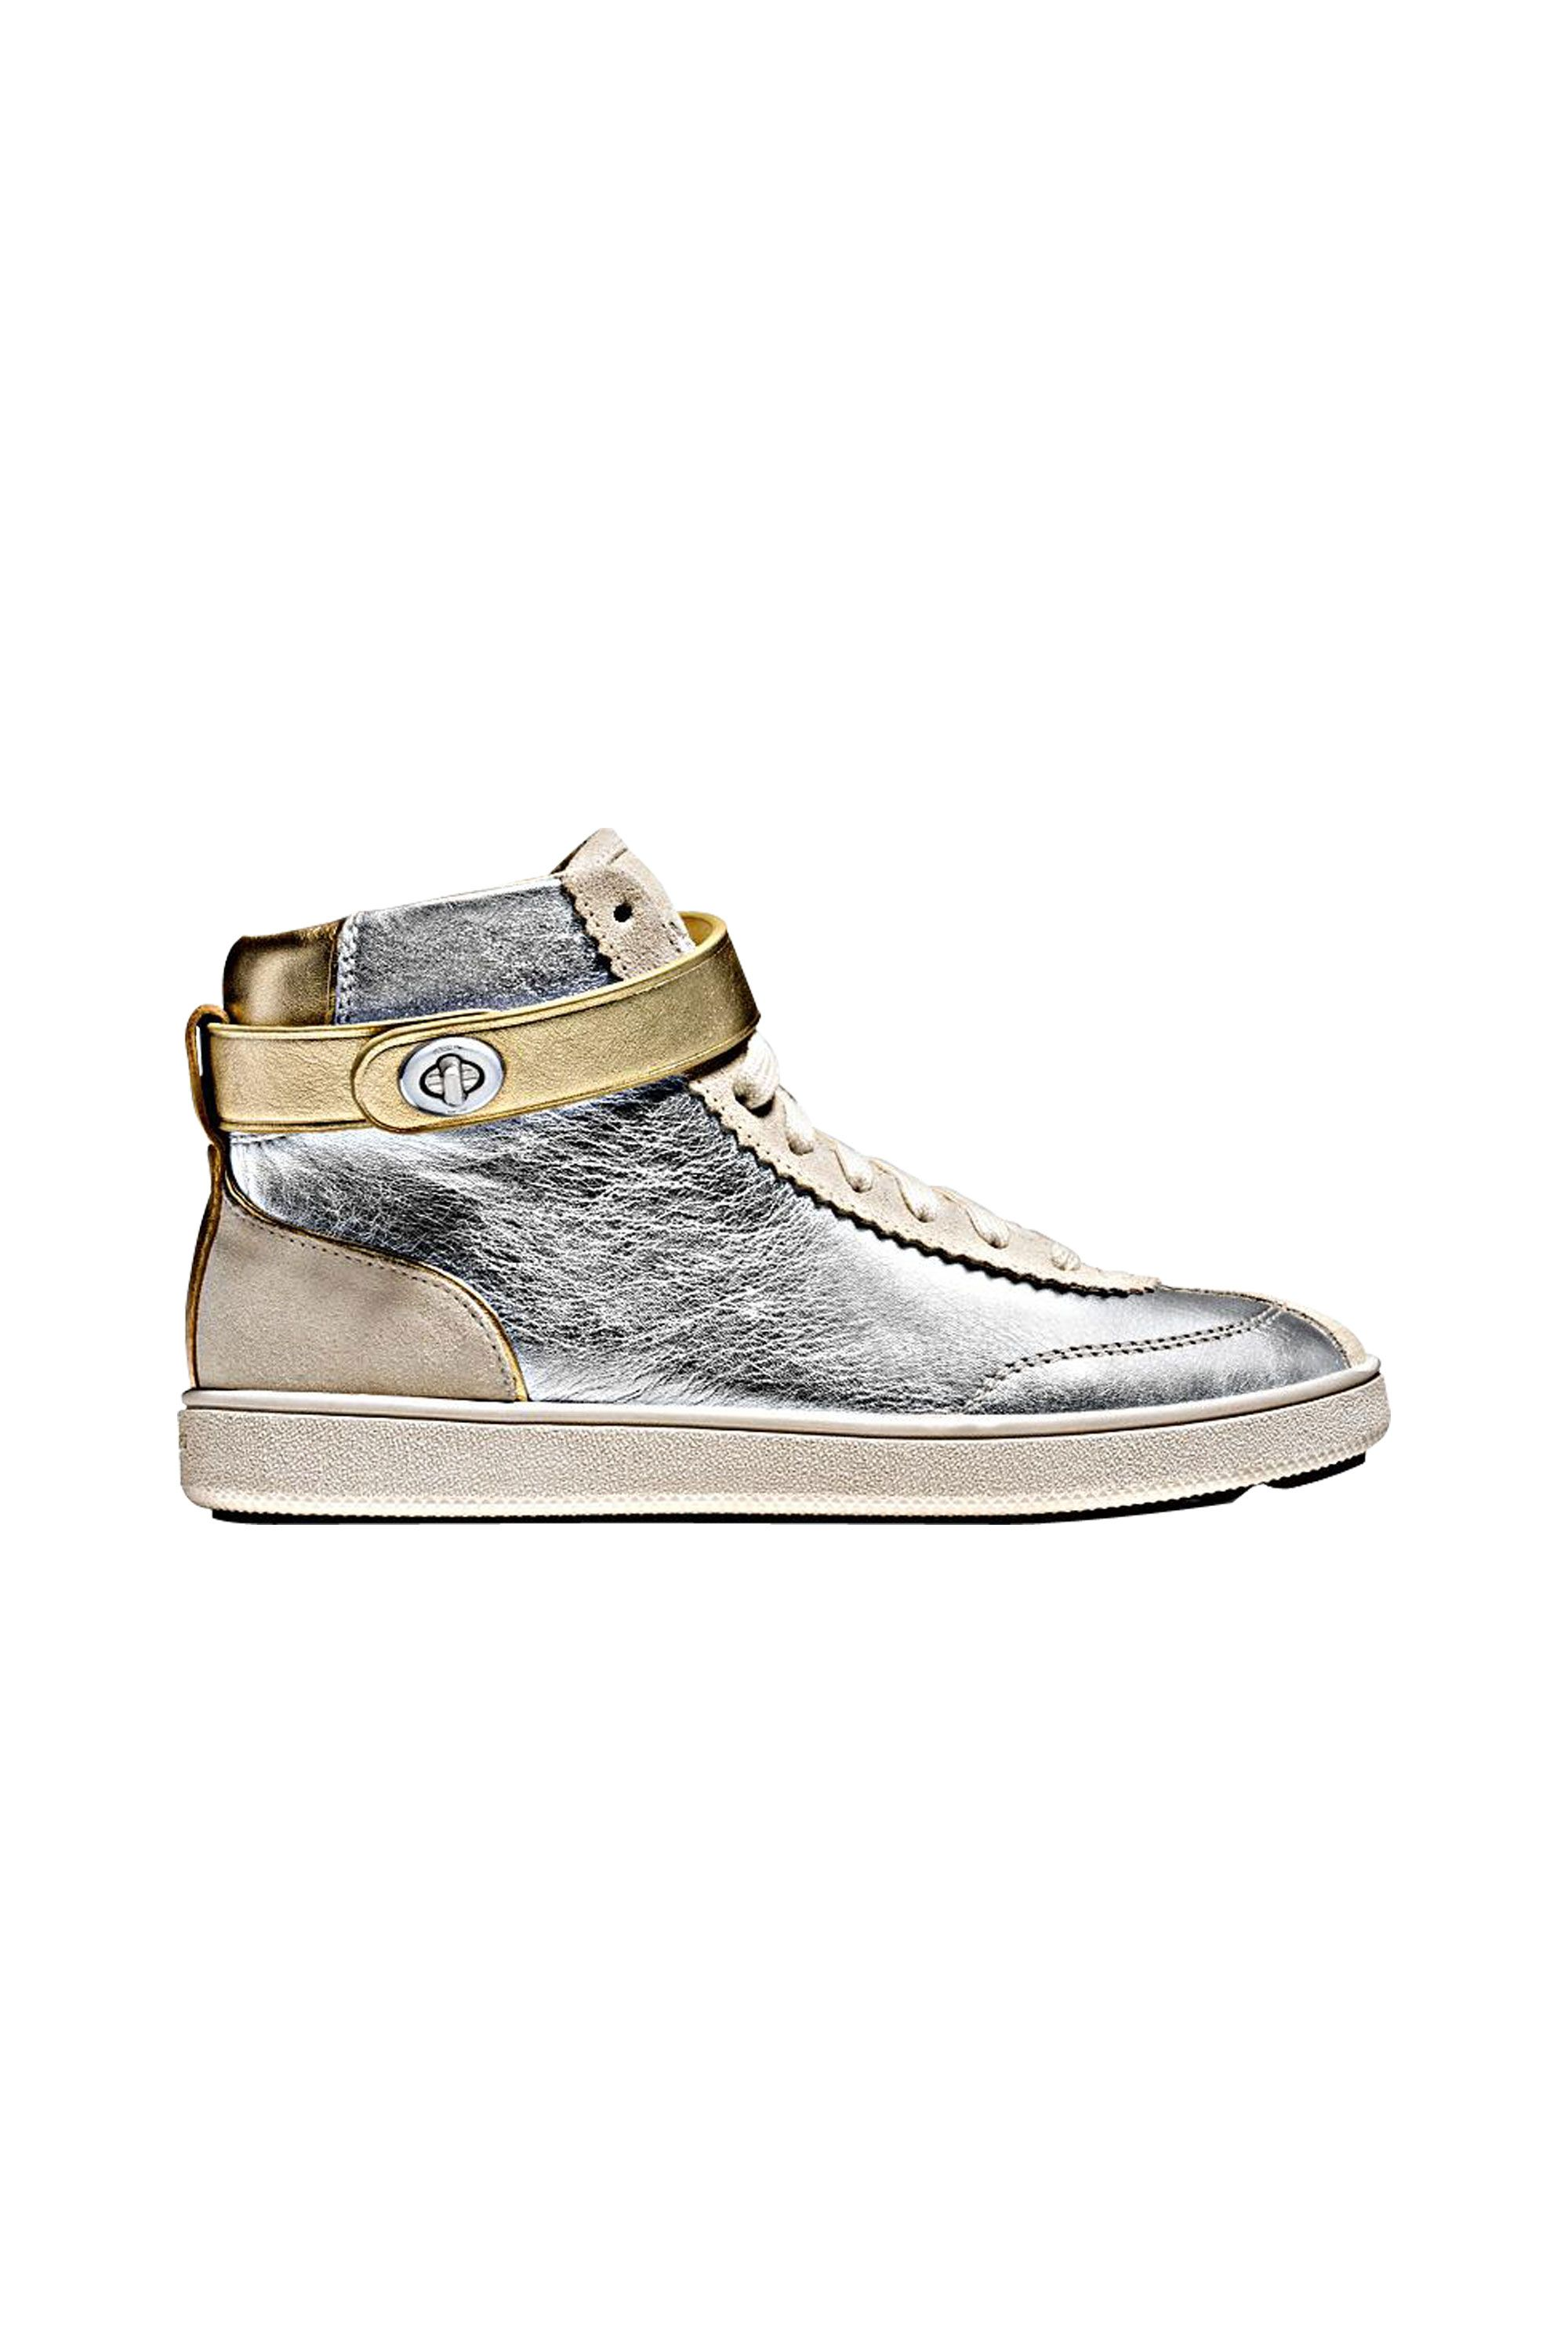 "<p>These sneakers—with their sleek metallic finish and clever turnlock fastening—are futuristic, but feel right with this season's varsity-inspired bombers. The shine commands serious attention, appealing to the kids who ruled the school.<br></p><p><em data-redactor-tag=""em"">Coach 1941 C213 High Top Sneaker, $350, <a rel=""noskim"" href=""http://www.coach.com/coach-designer-sneakers-c213-high-top-sneaker/Q8922.html?CID=D_B_ELL_11742"" target=""_blank"">coach.com</a></em></p>"